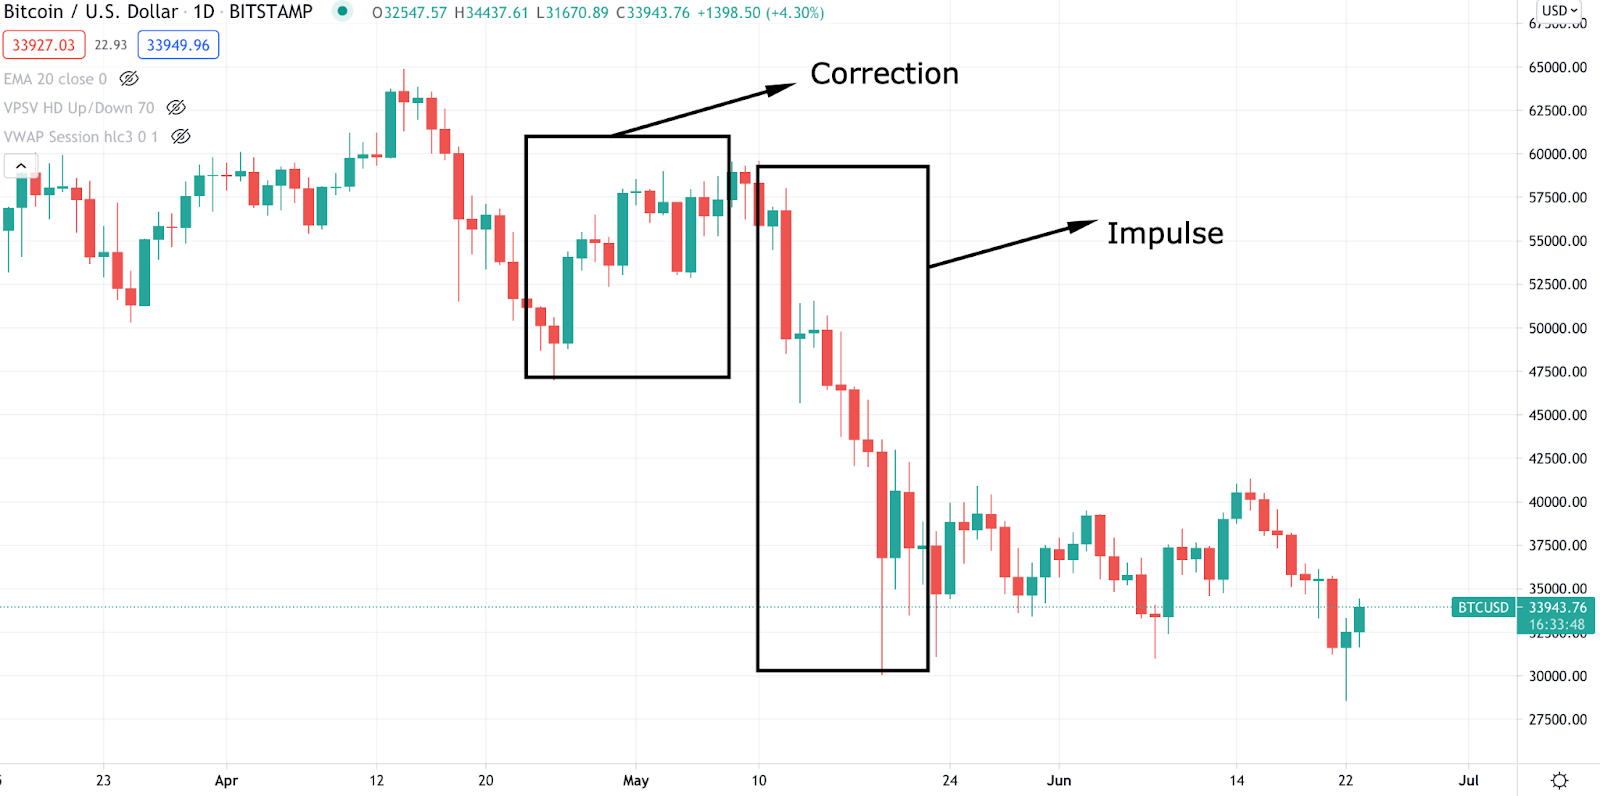 An indication of a correction and impulse on a Bitcoin chart.